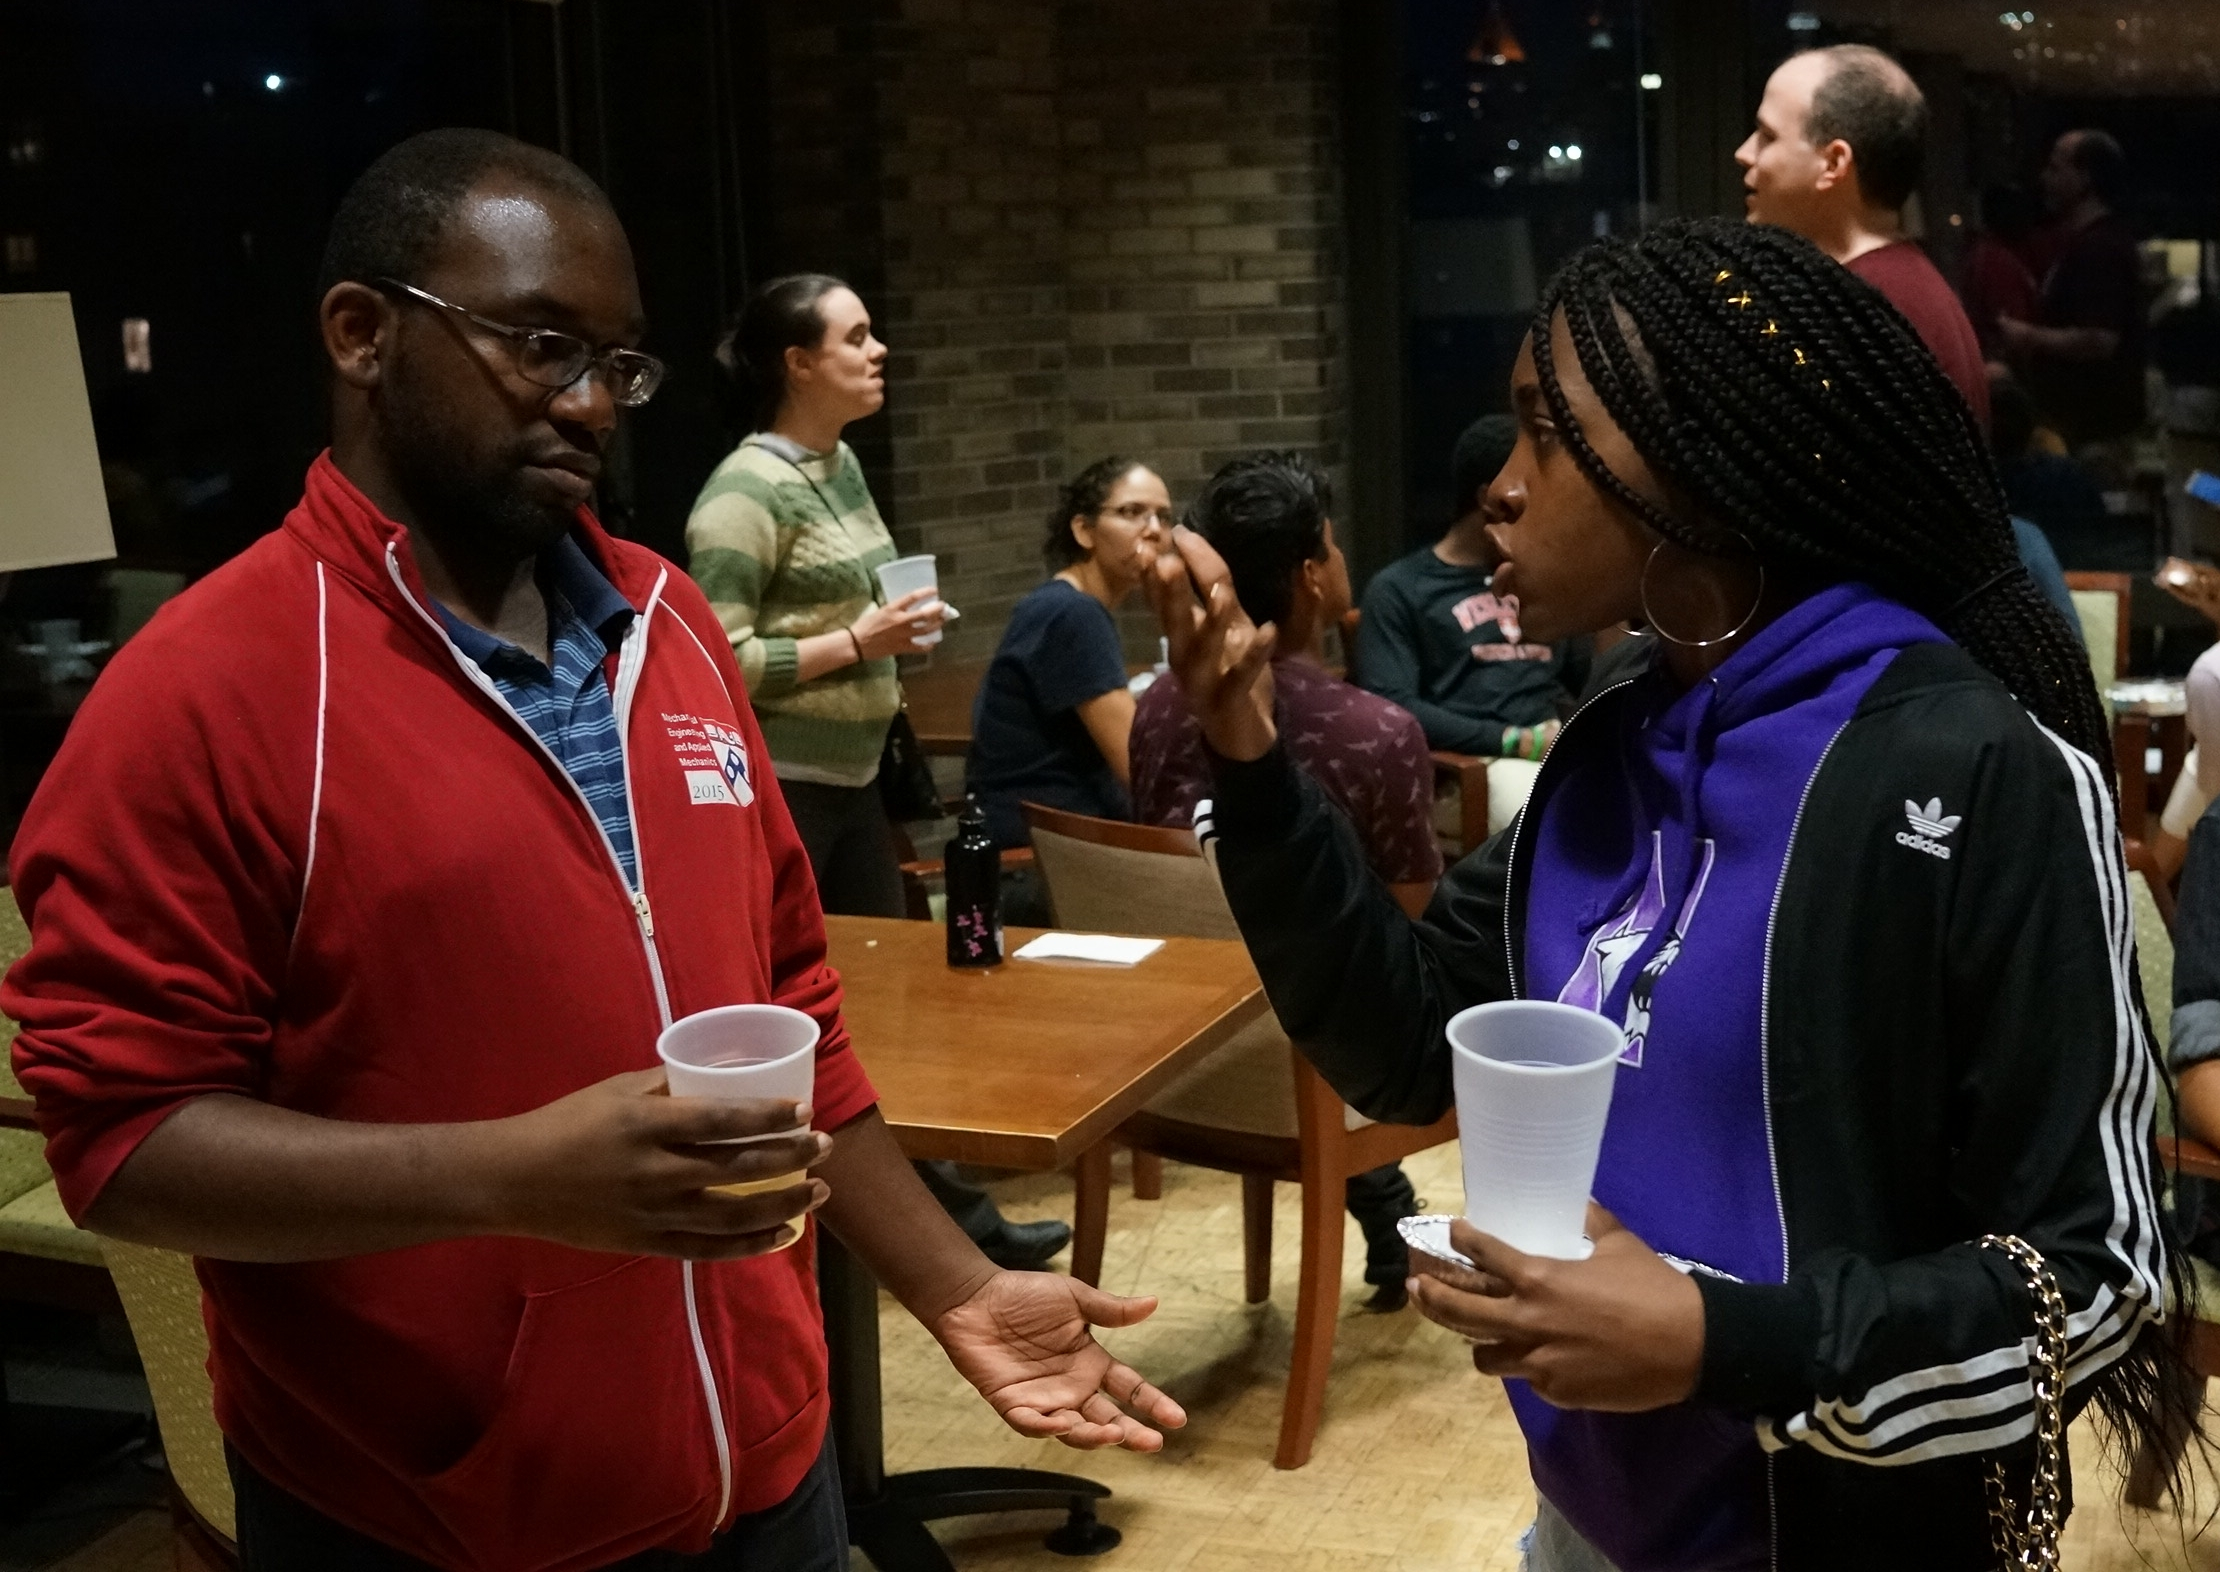 Aisha (right) discusses college plans with Ayinde, BEAM's College Support Coordinator.